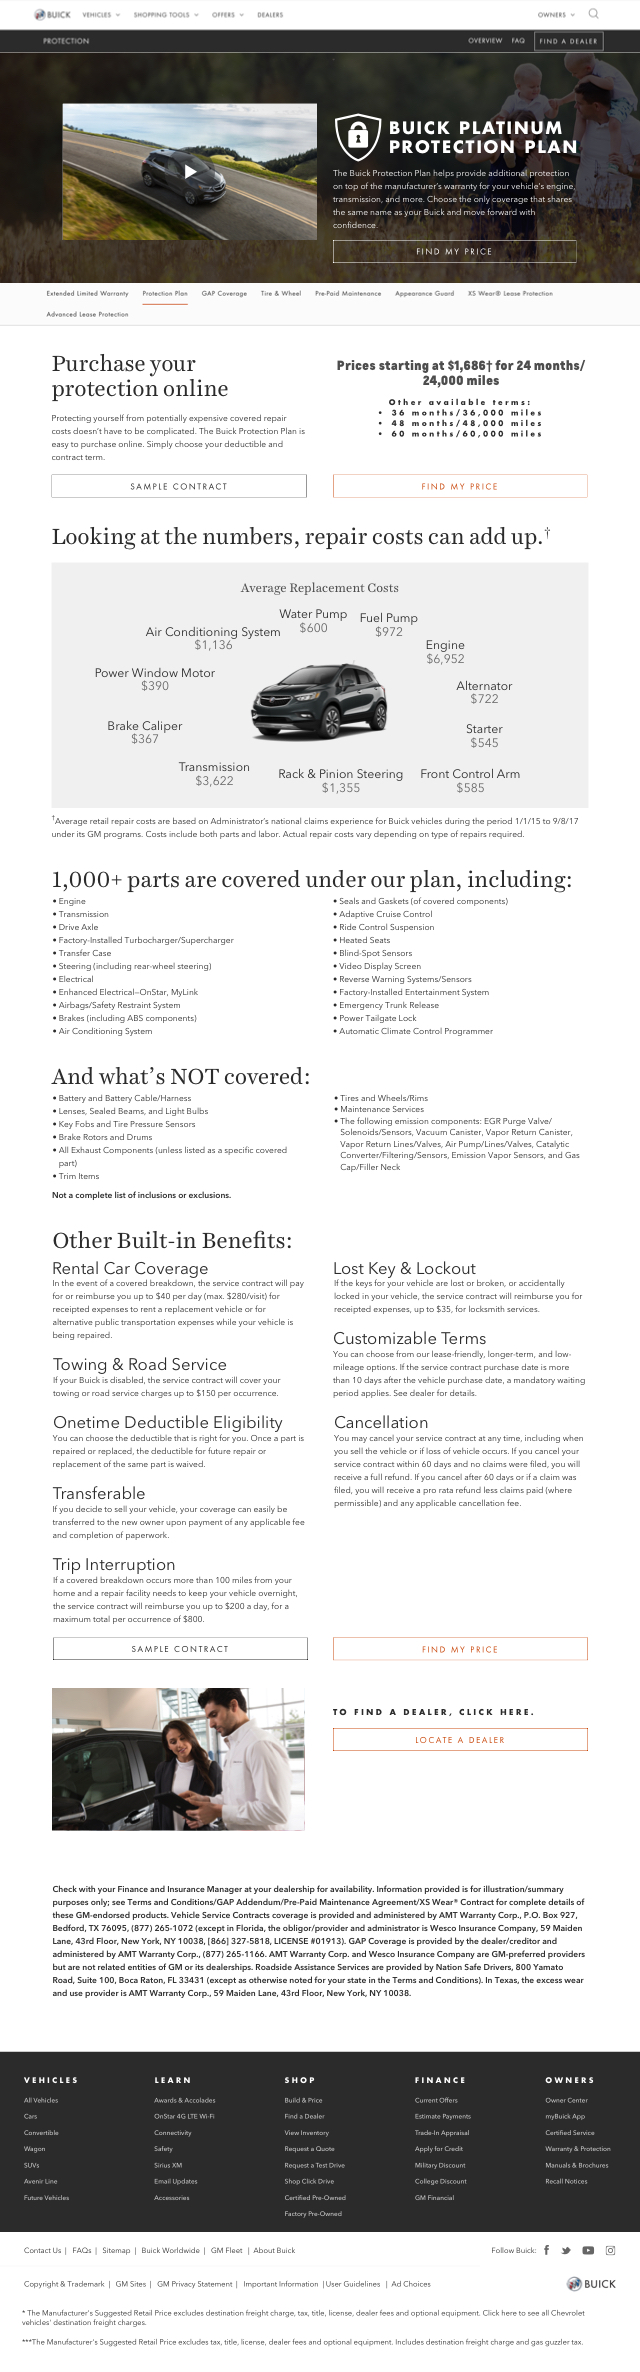 XL - Protection Page.jpg